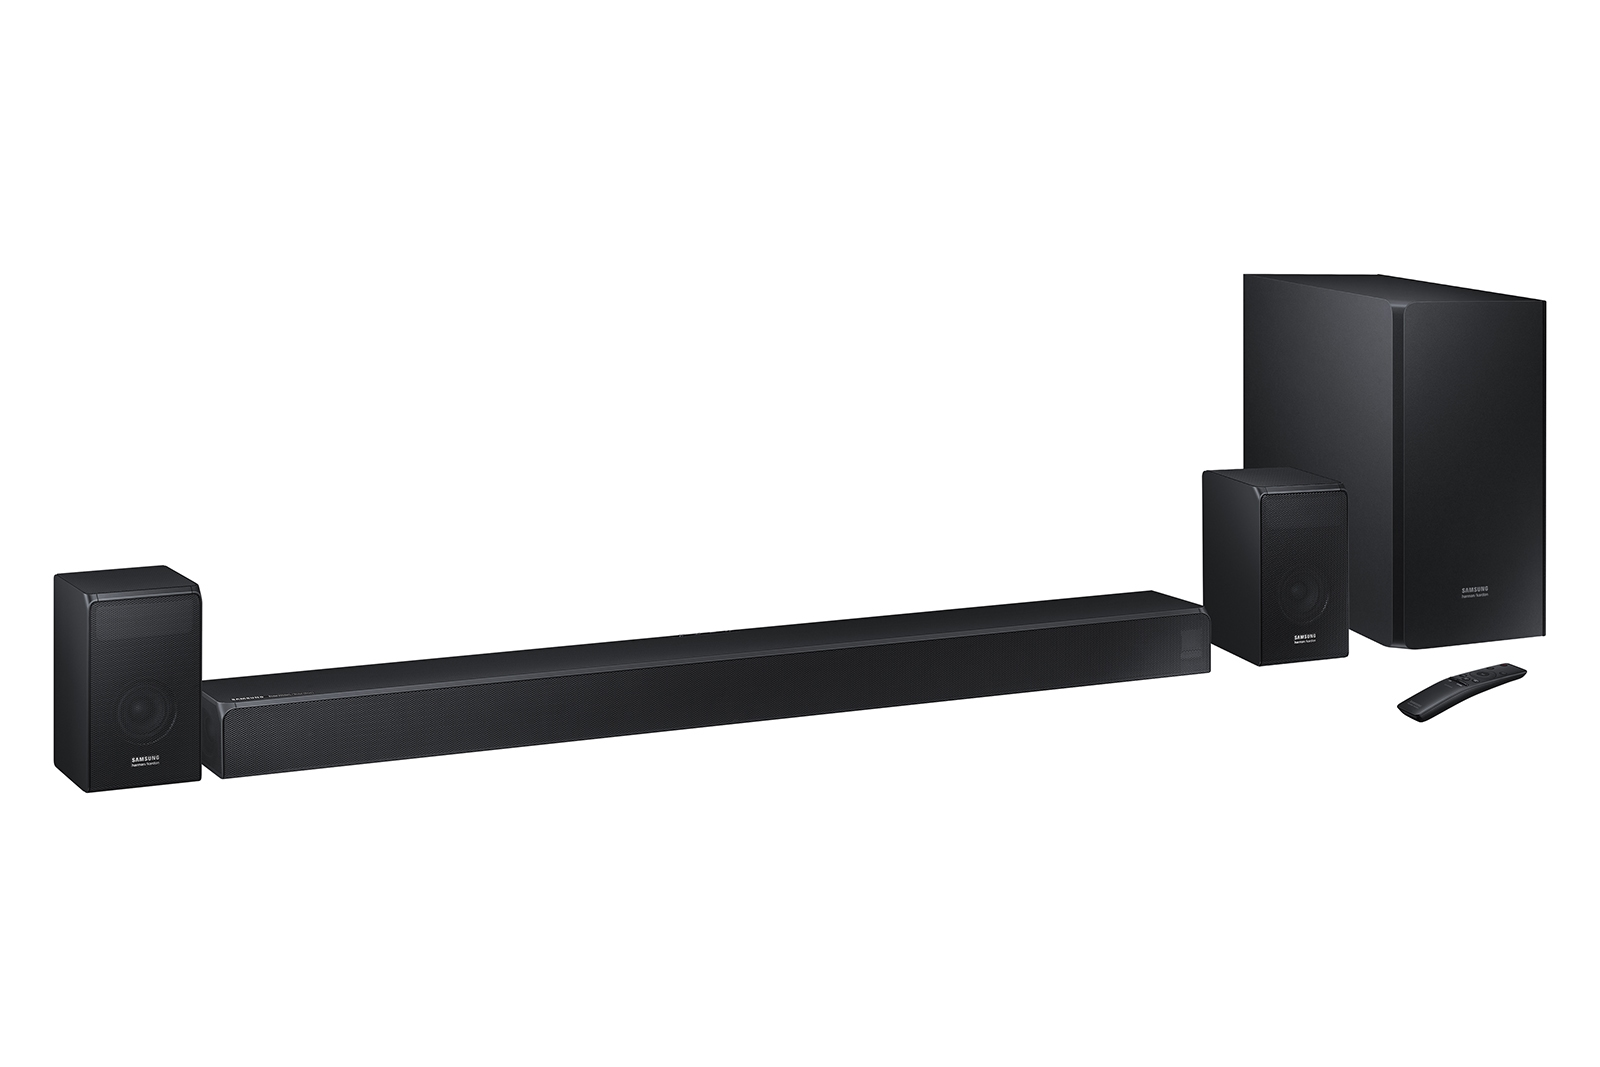 Soundbar Weiß Hw N950 Samsung Harman Kardon Soundbar With Dolby Atmos Home Theater Hw N950 Za Samsung Us